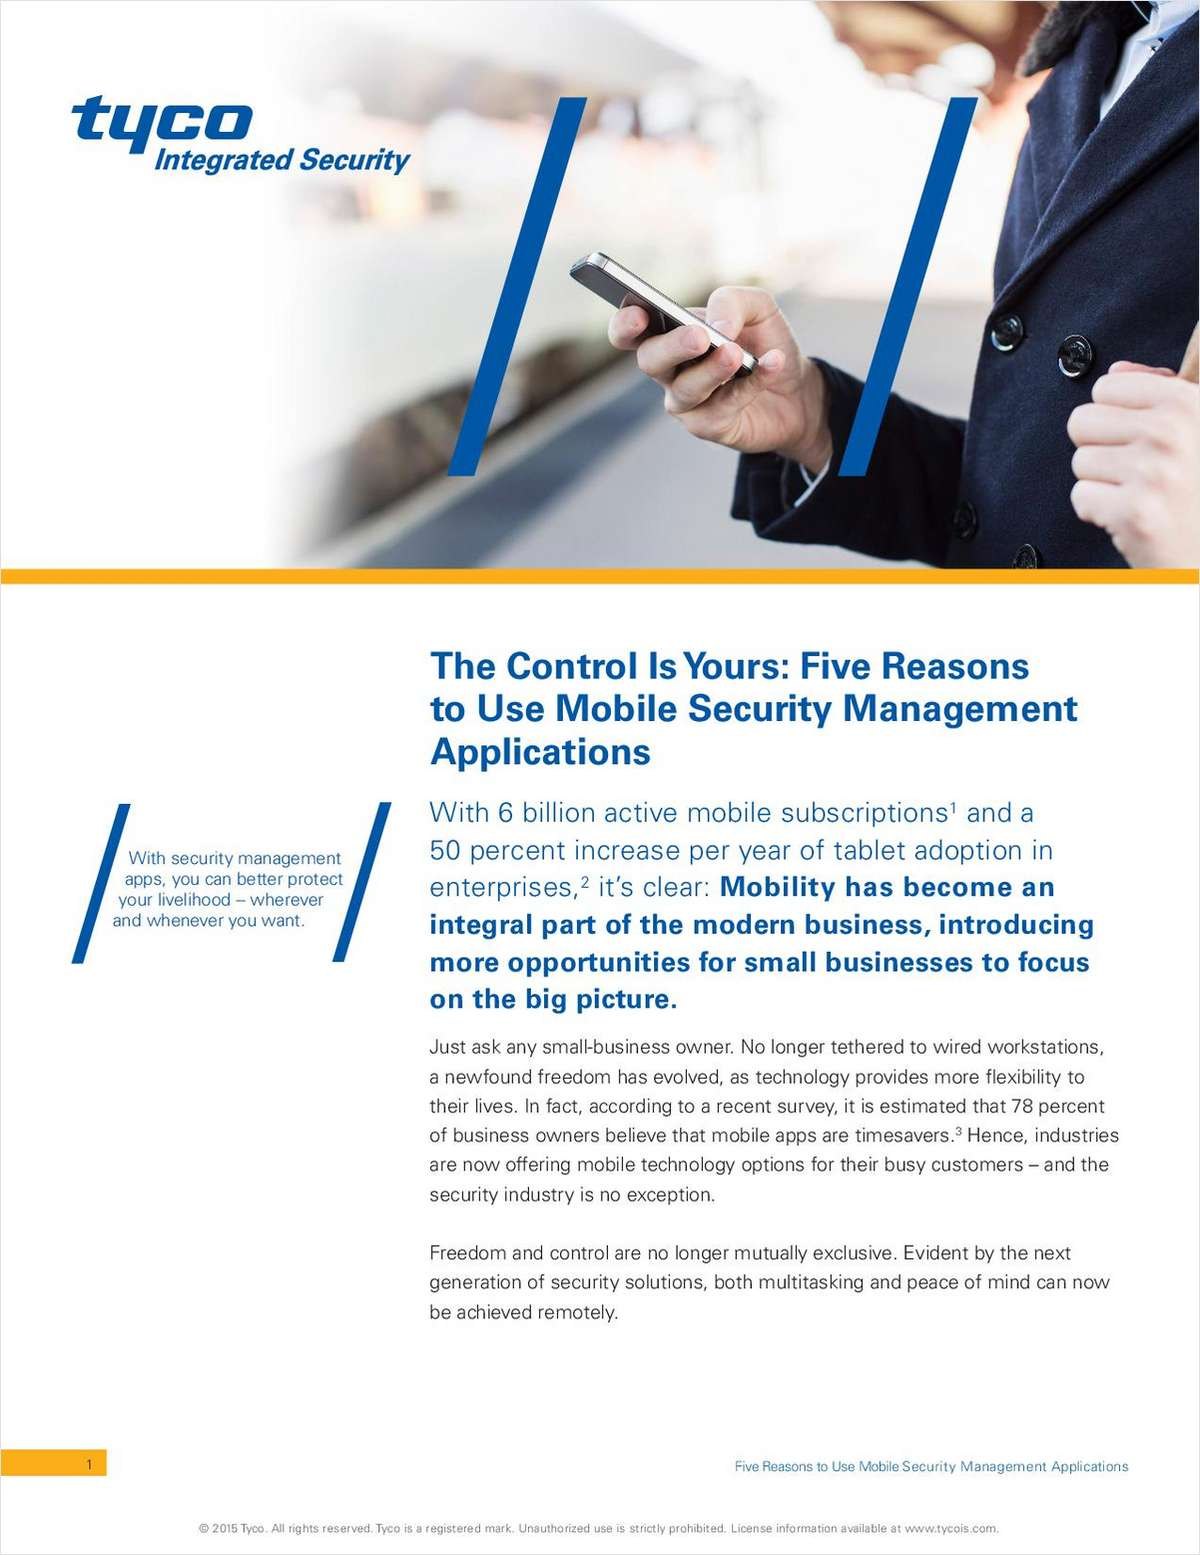 The Control Is Yours: Five Reasons to Use Mobile Security Management Applications